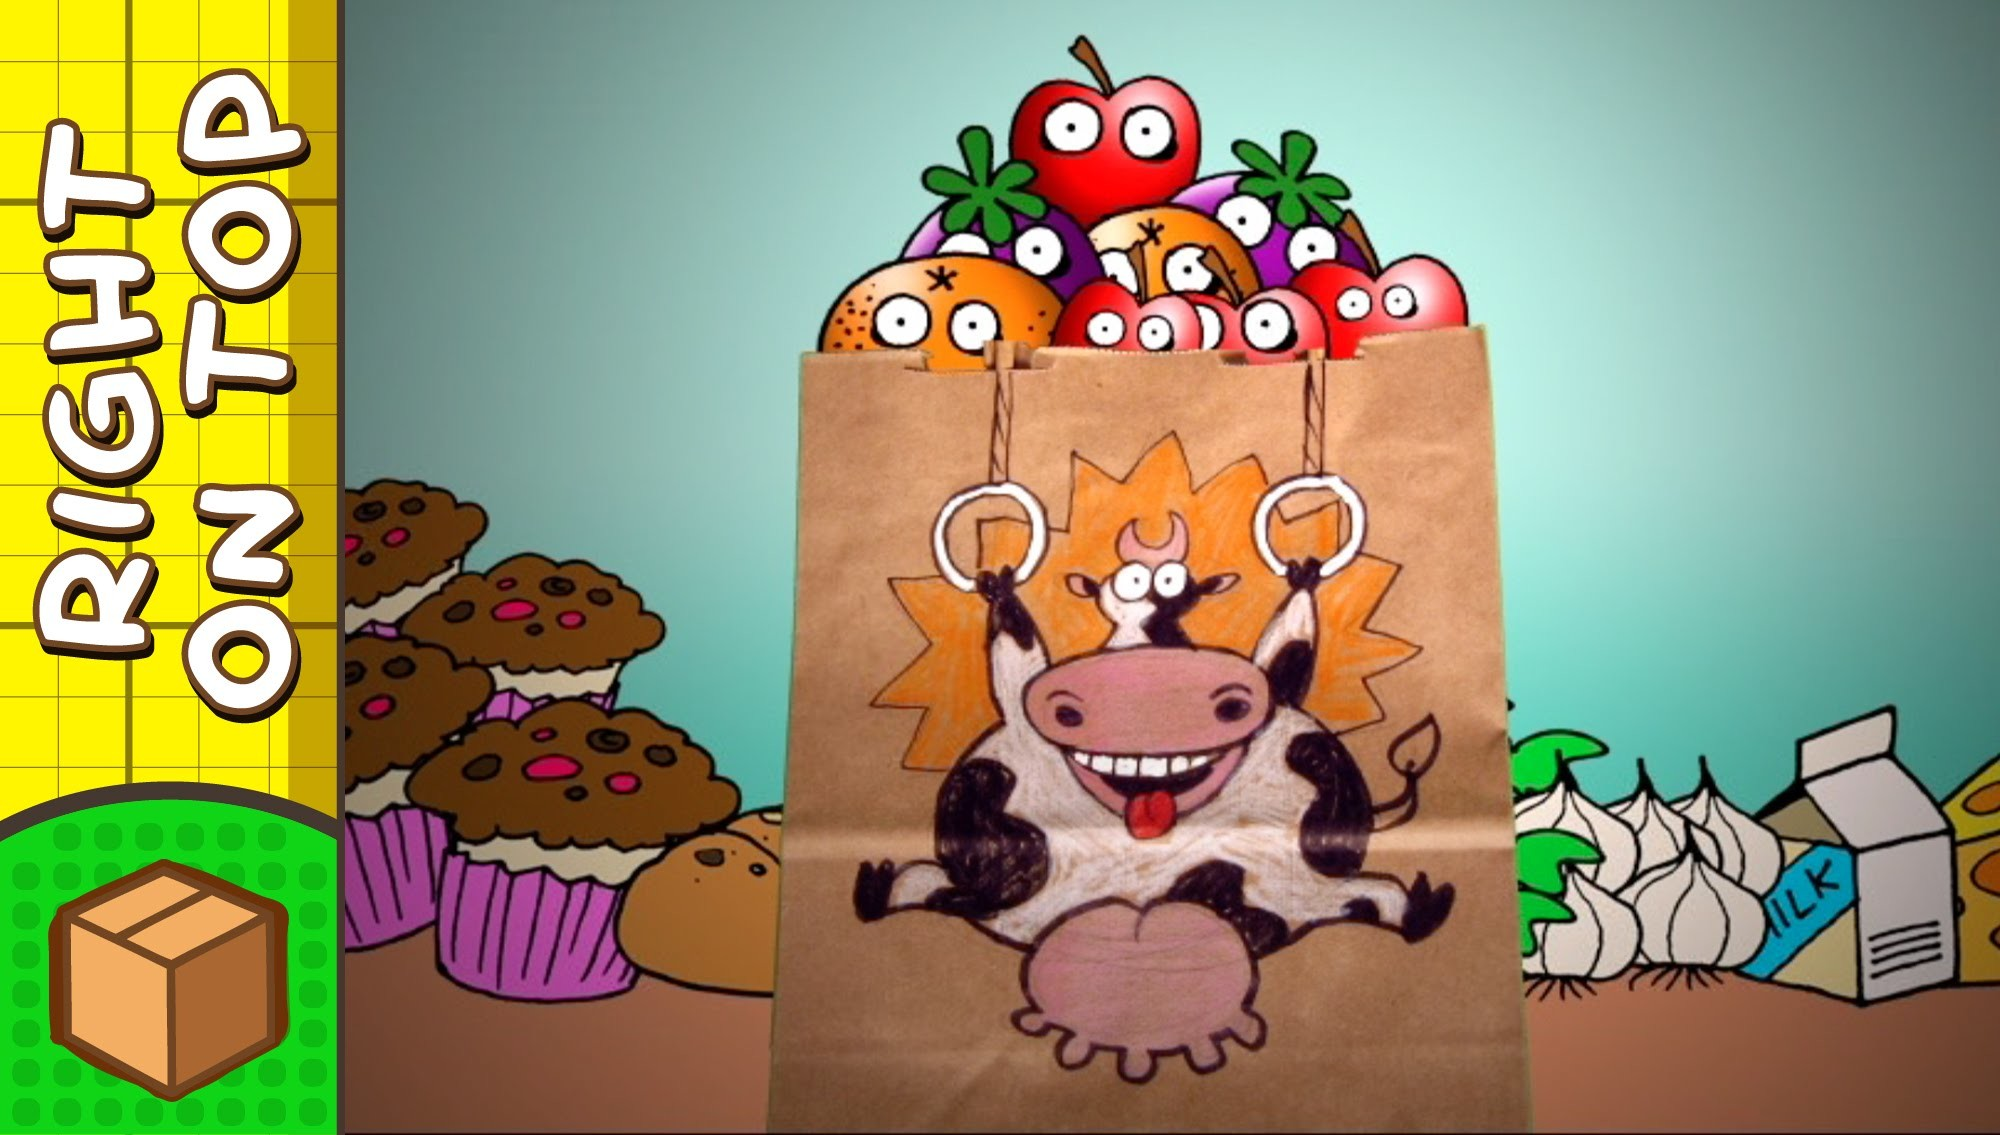 Crafts Ideas for Kids - Cow Paper Bag | DIY on BoxYourSelf